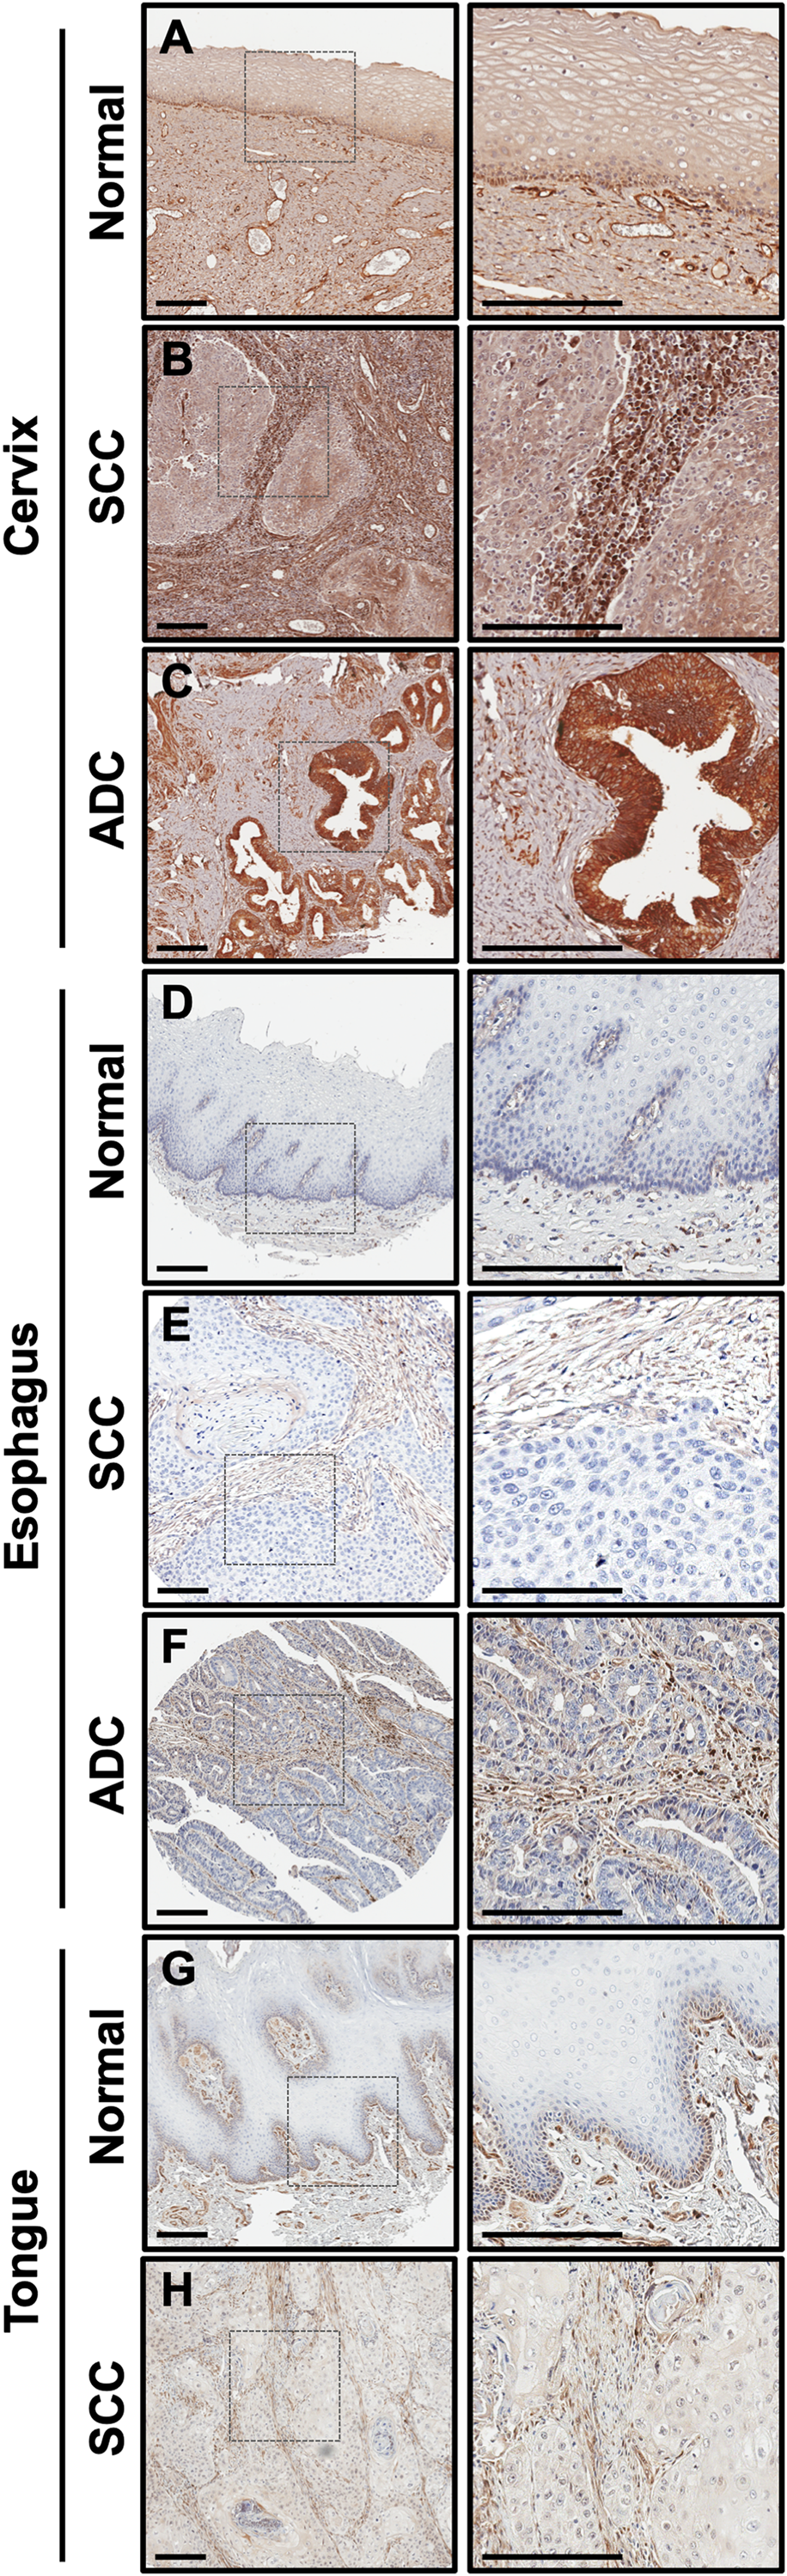 CLIC4 expression is low in epithelia of multiple squamous cancers but elevated in stromal cells.